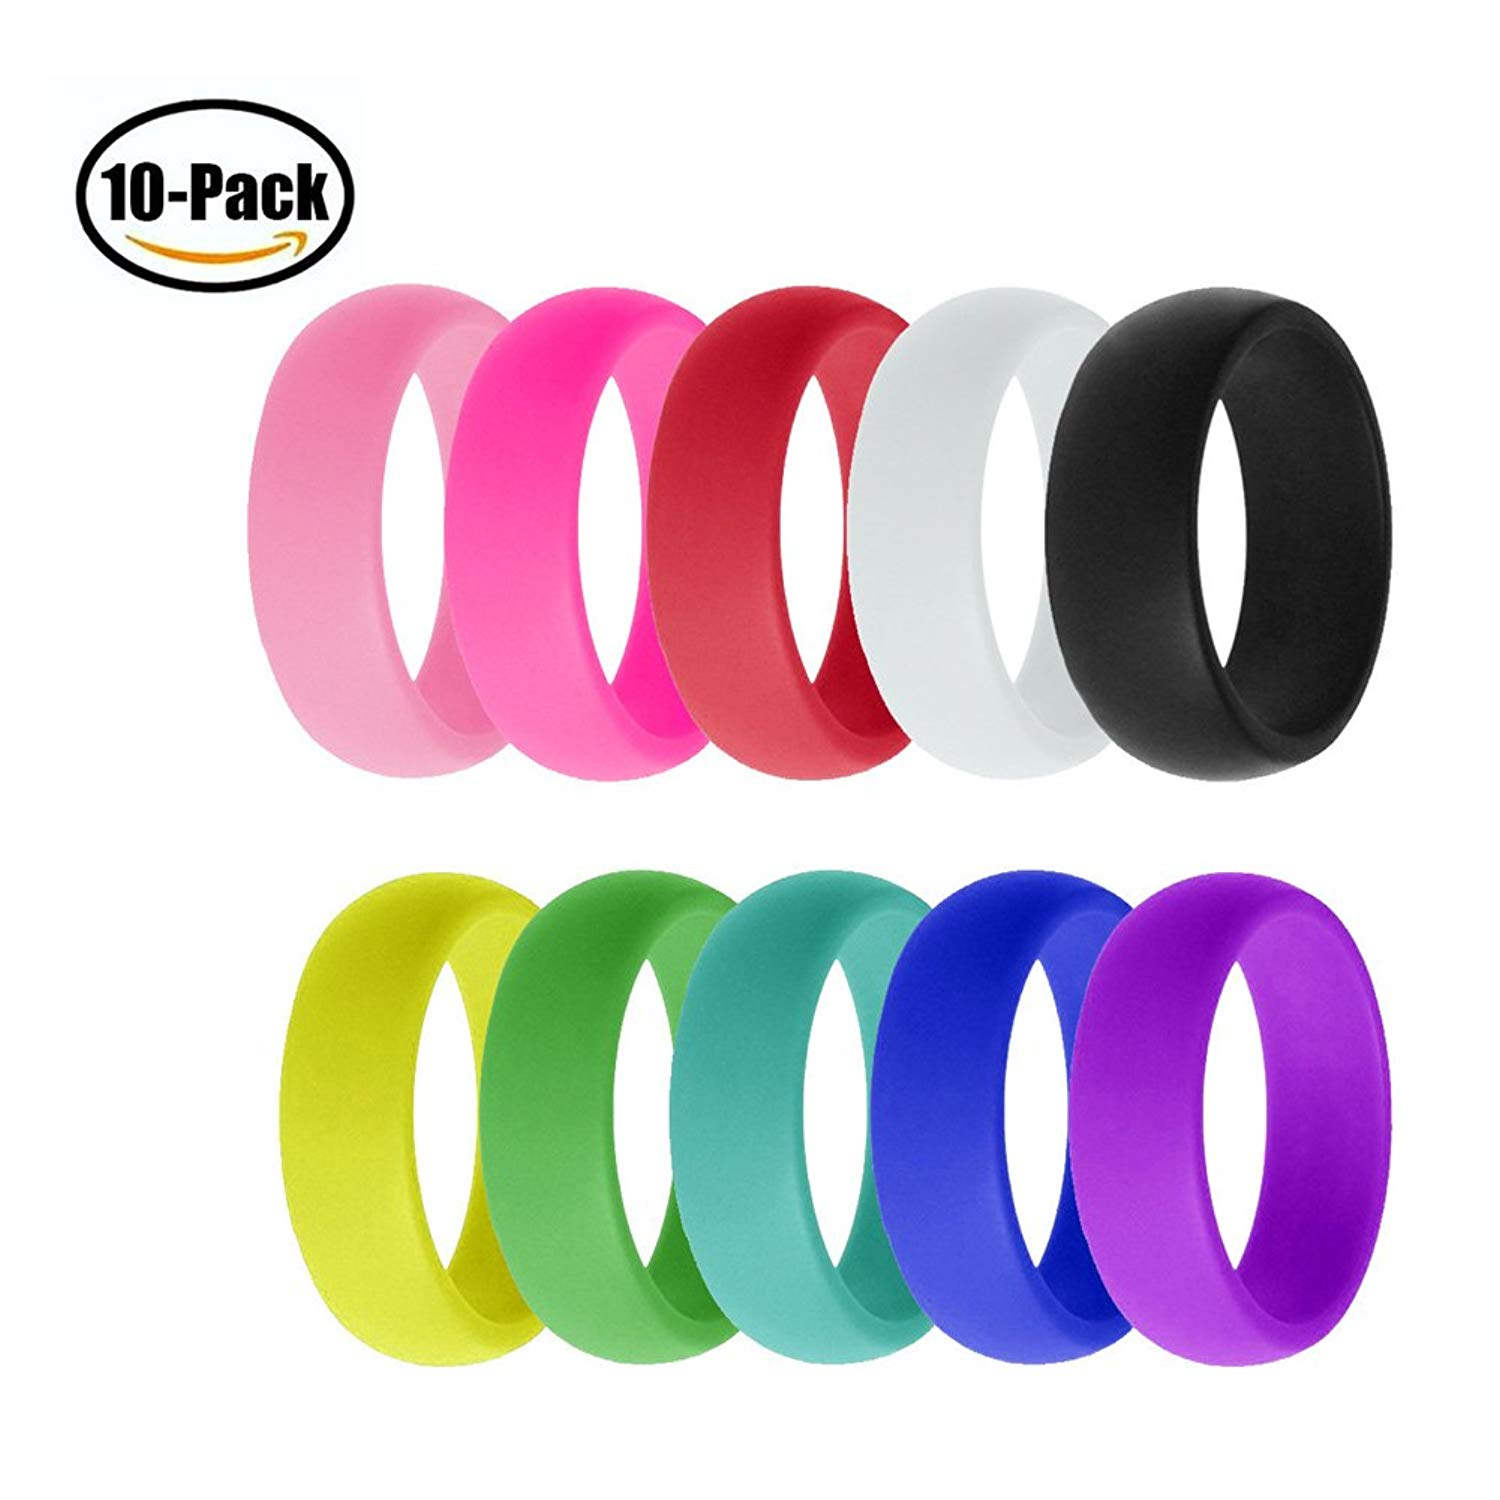 TINXOO 10 Pack Silicone Wedding Ring for Men Women, Premium Medical Grade Wedding Bands Thin and Stackable Durable Comfortable Antibacterial Rubber Rings